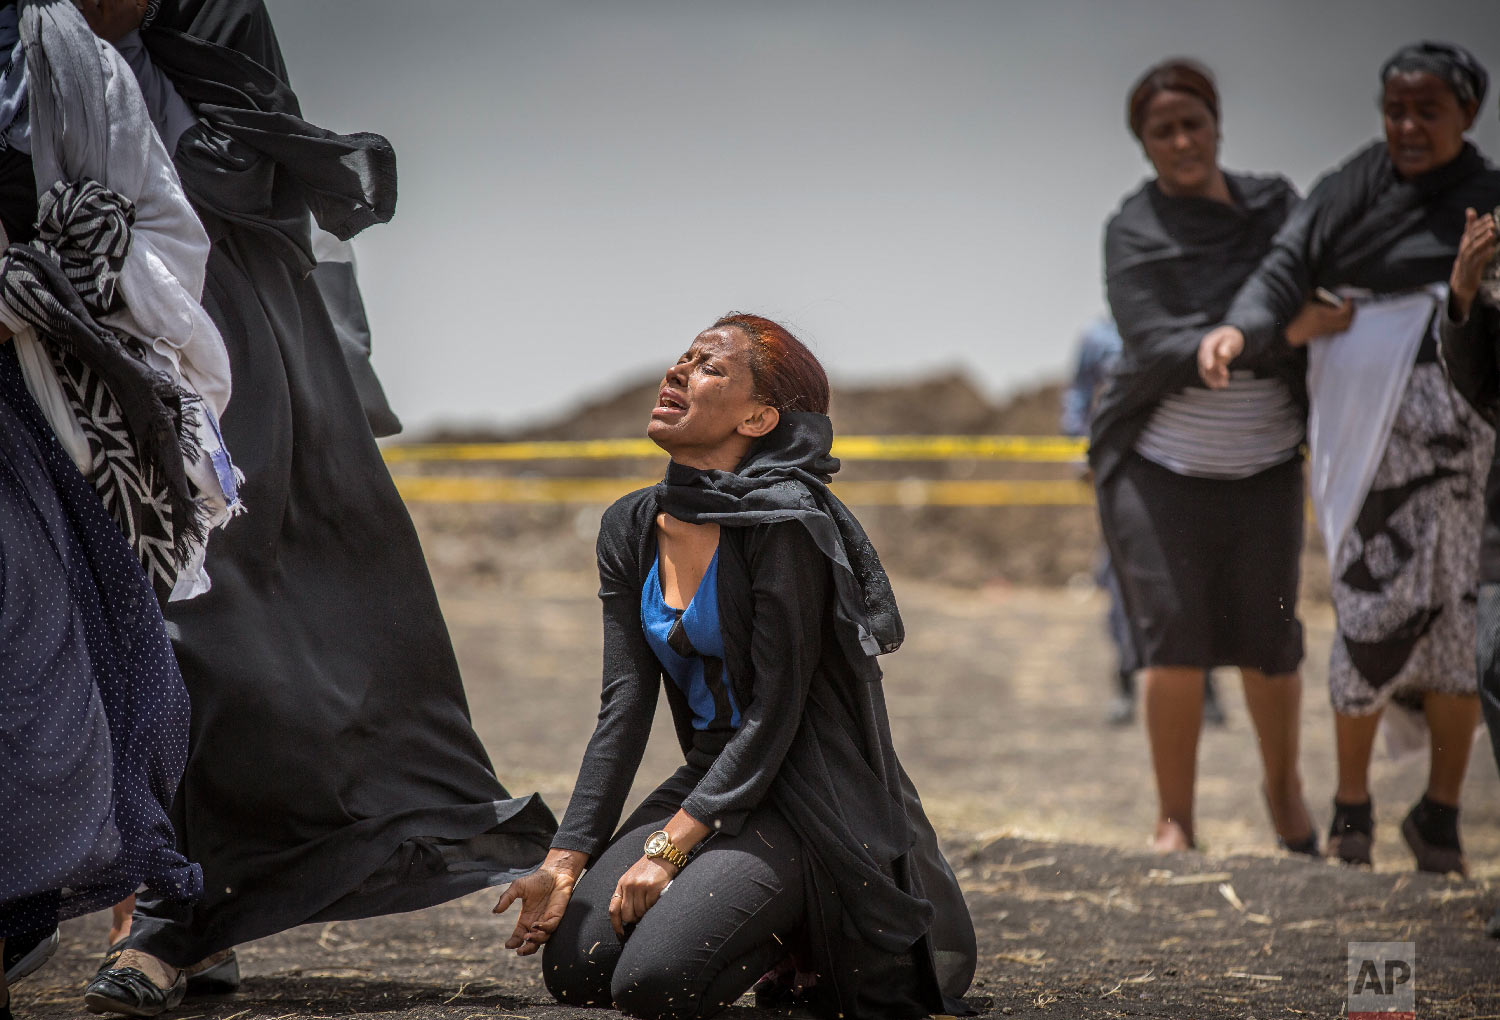 Ethiopian relatives of crash victims mourn and grieve at the scene where the Ethiopian Airlines Boeing 737 Max 8 crashed shortly after takeoff on Sunday near Bishoftu, Ethiopia, March 14, 2019. (AP Photo/Mulugeta Ayene)